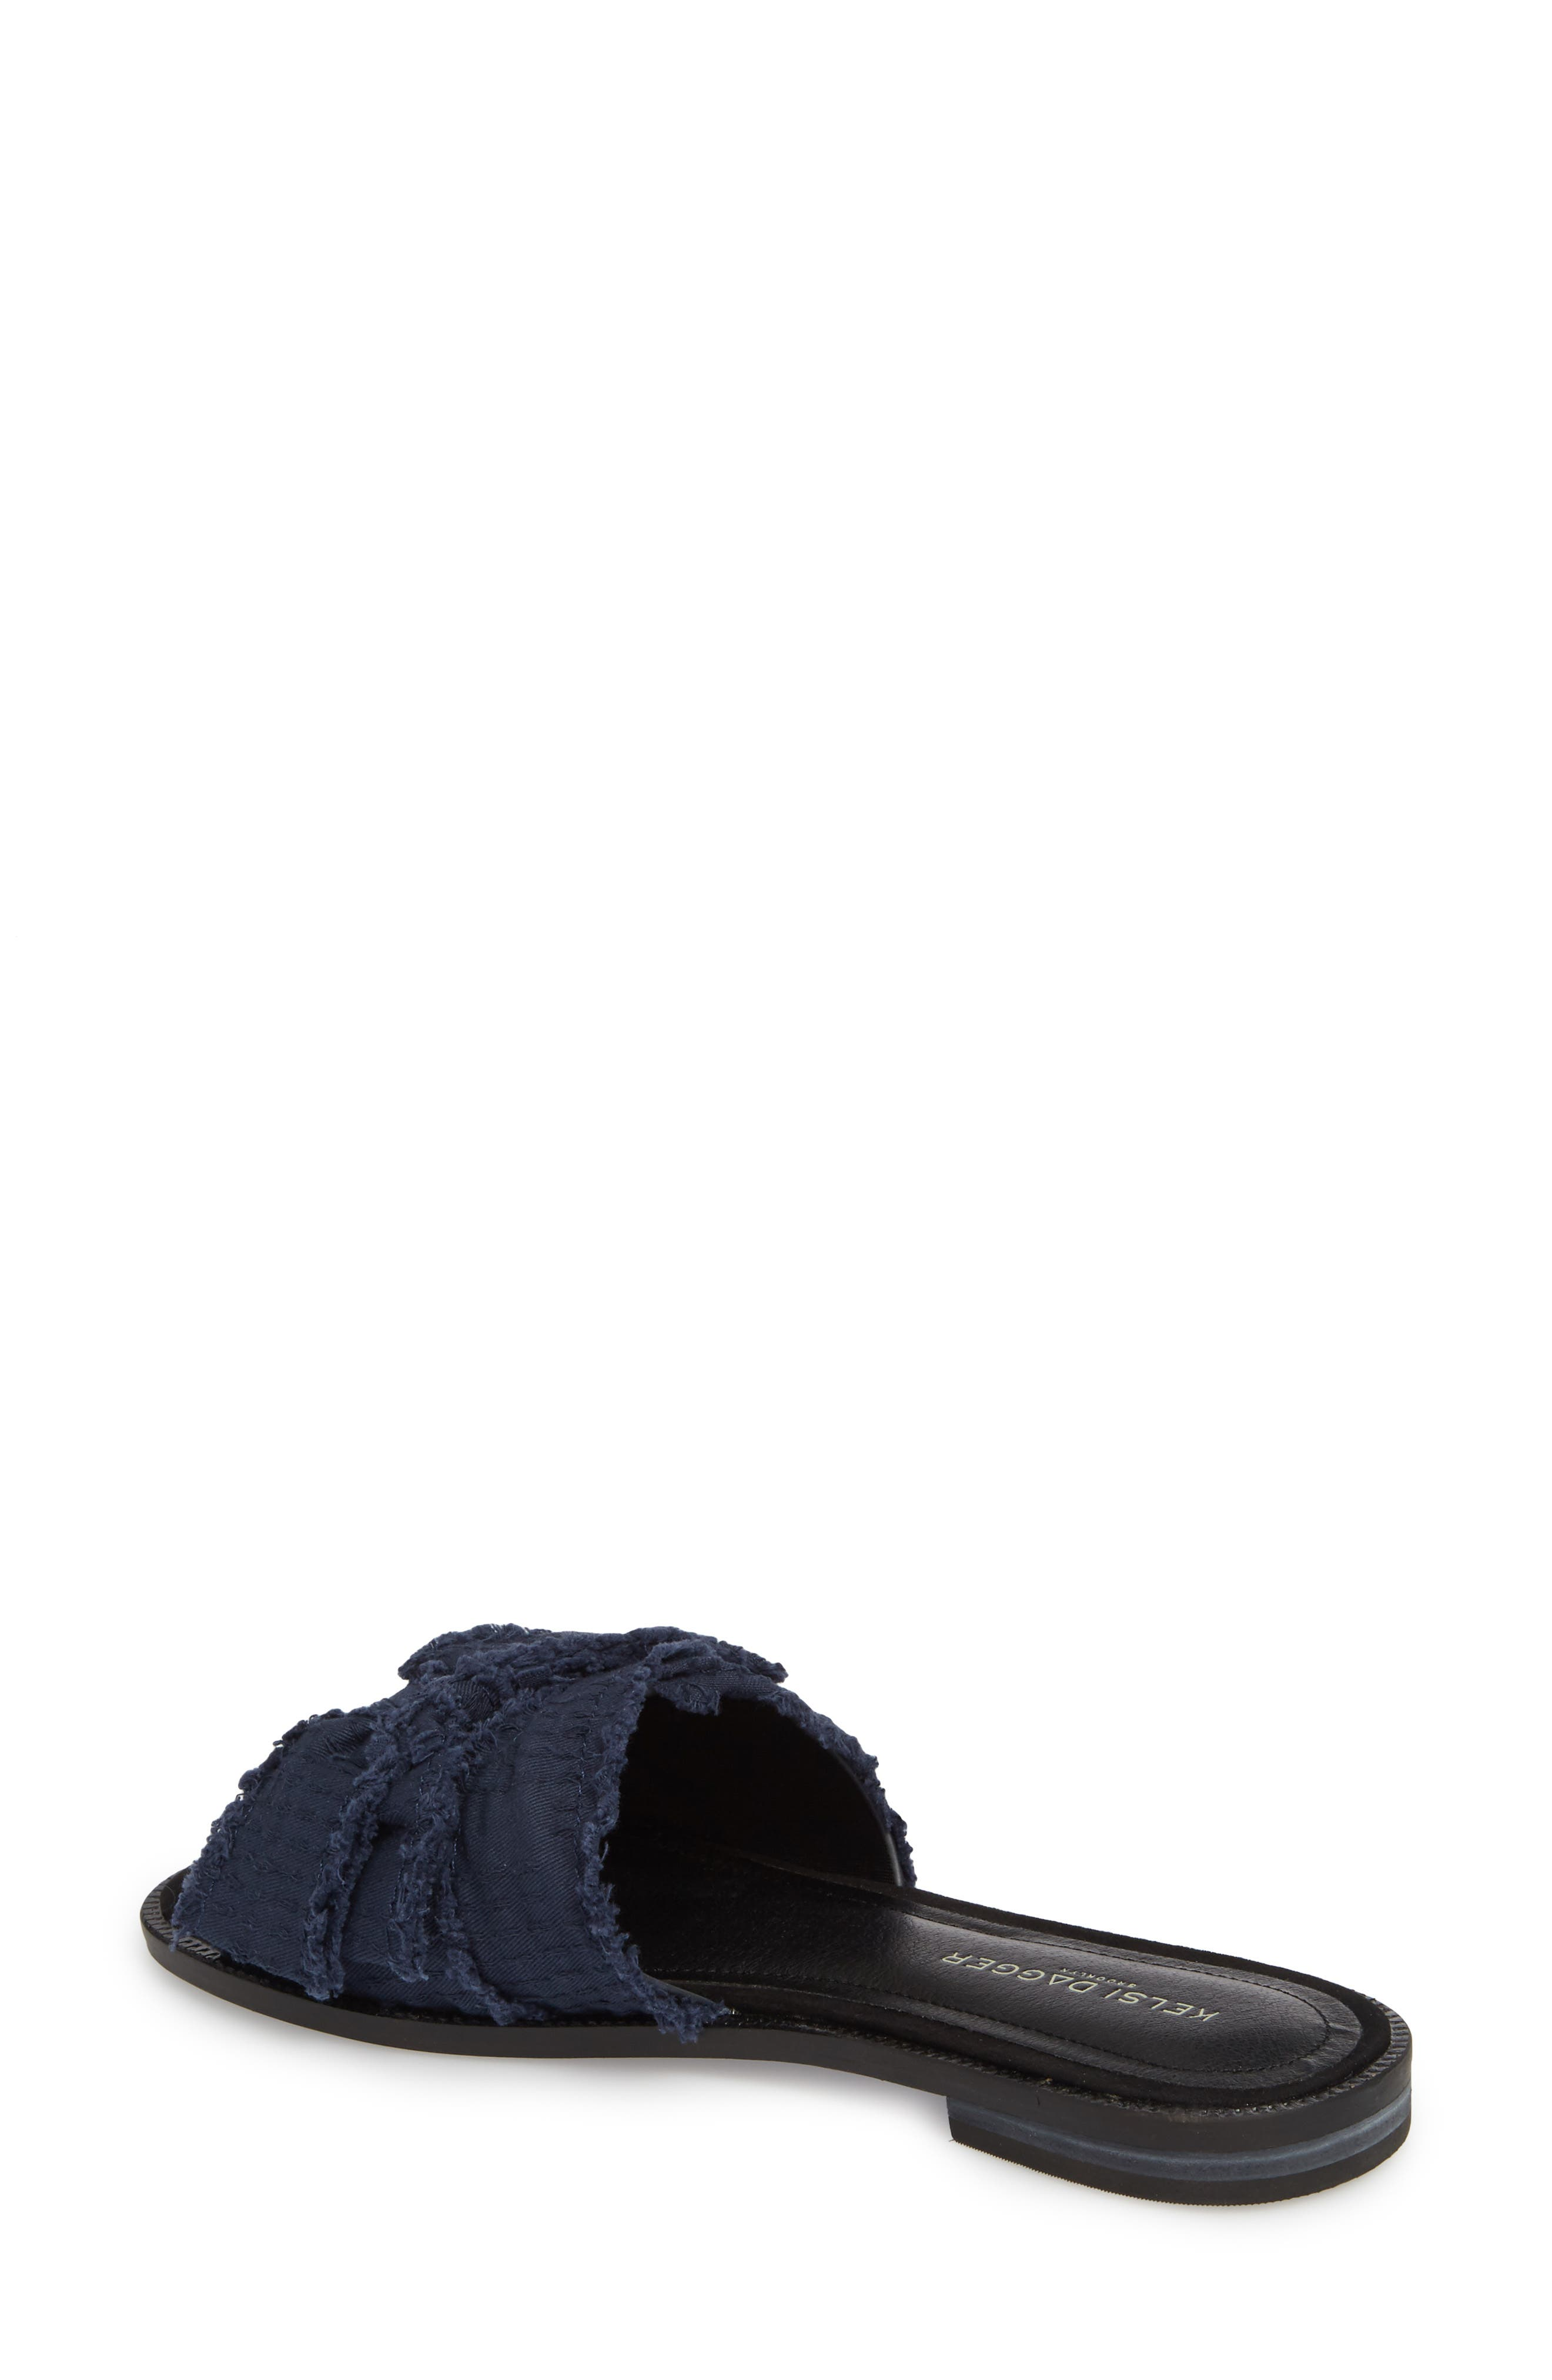 Revere Bow Slide Sandal,                             Alternate thumbnail 2, color,                             BLACK/ NAVY LEATHER